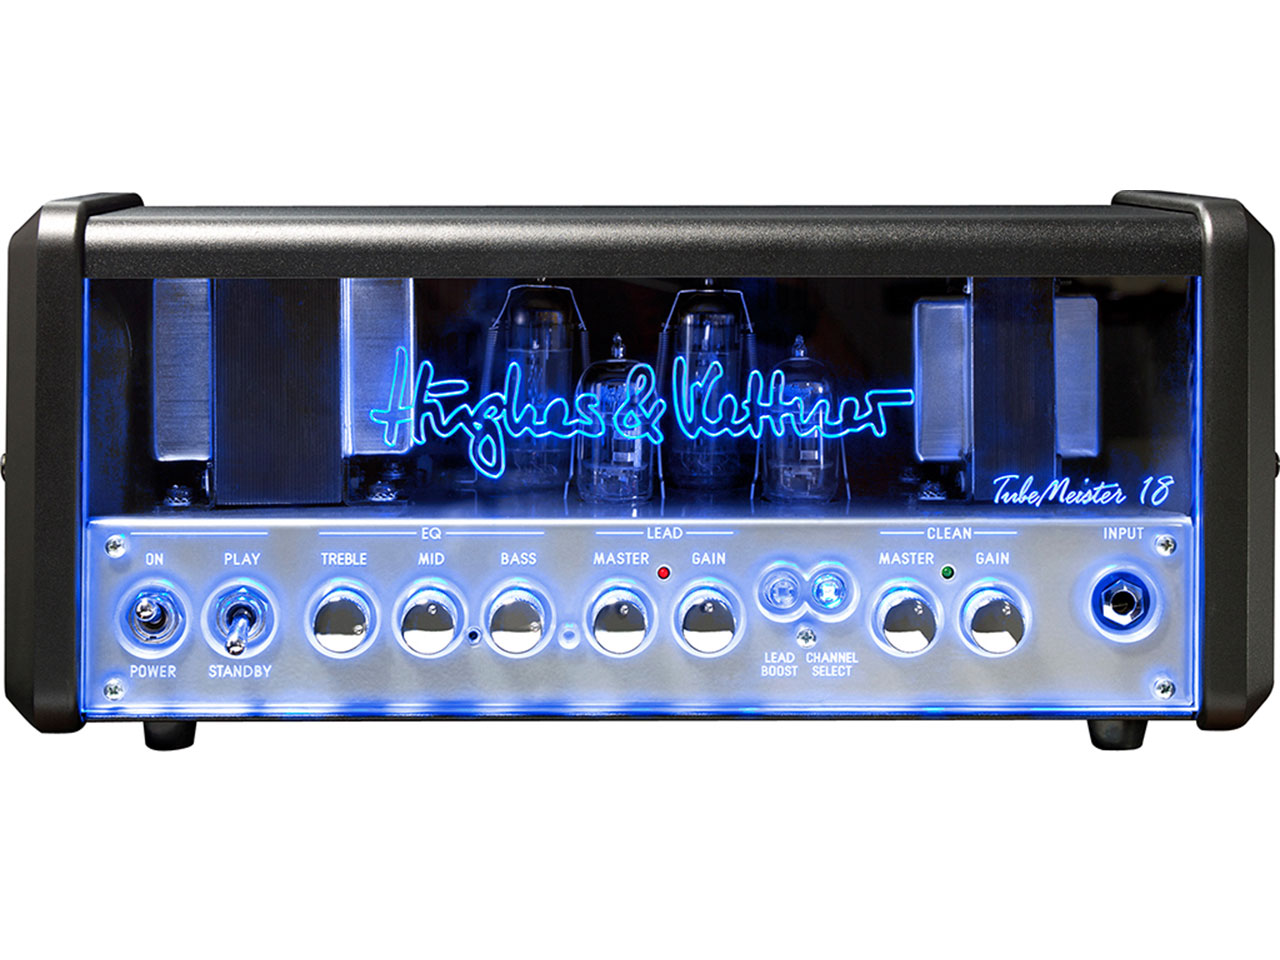 Hughes&Kettner / Tube Meister 18 Head